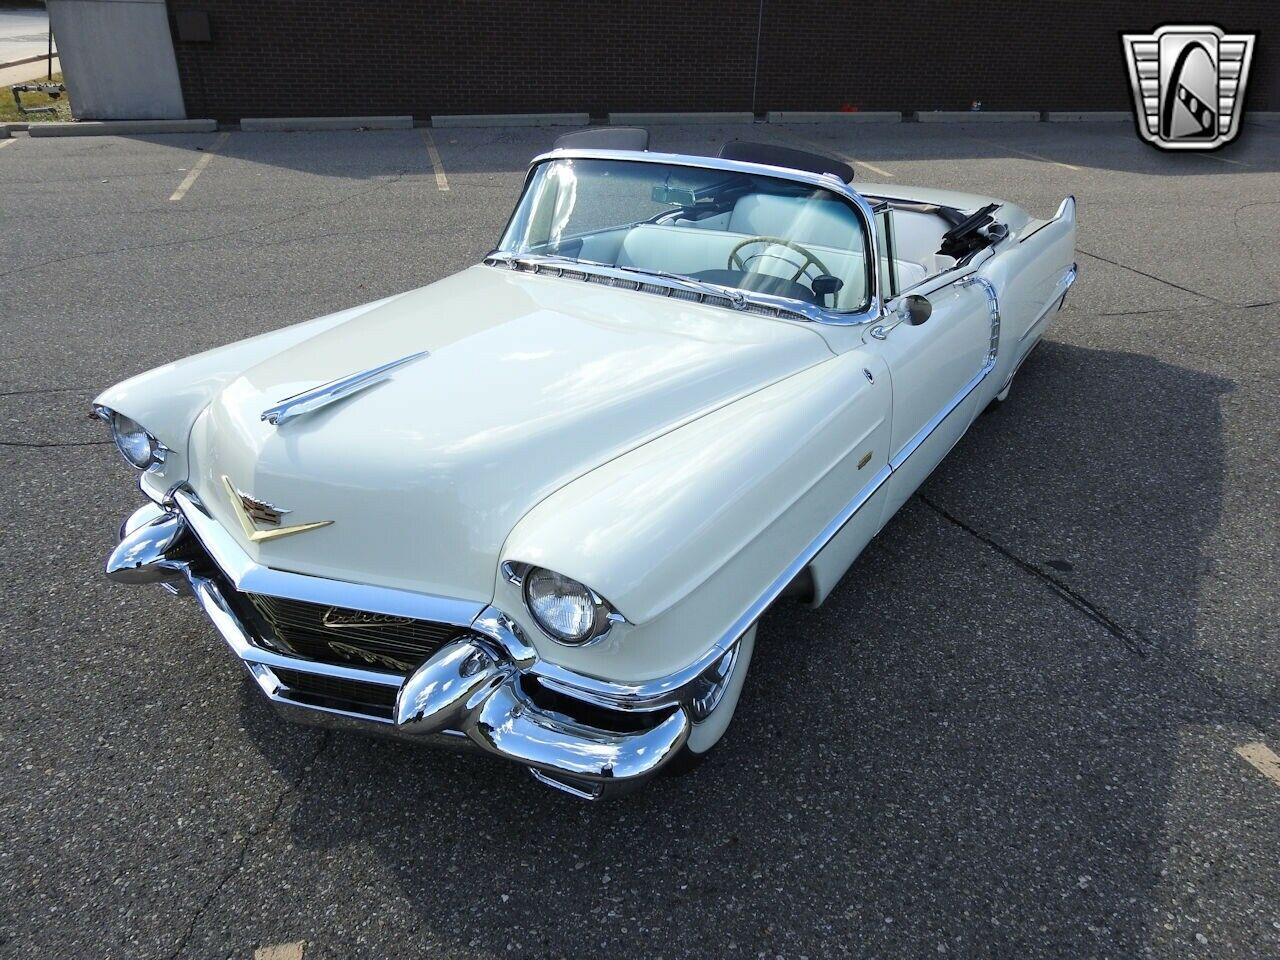 White 1956 Cadillac Series 62 Convertible 331 CID V8 4 Speed Automatic Available